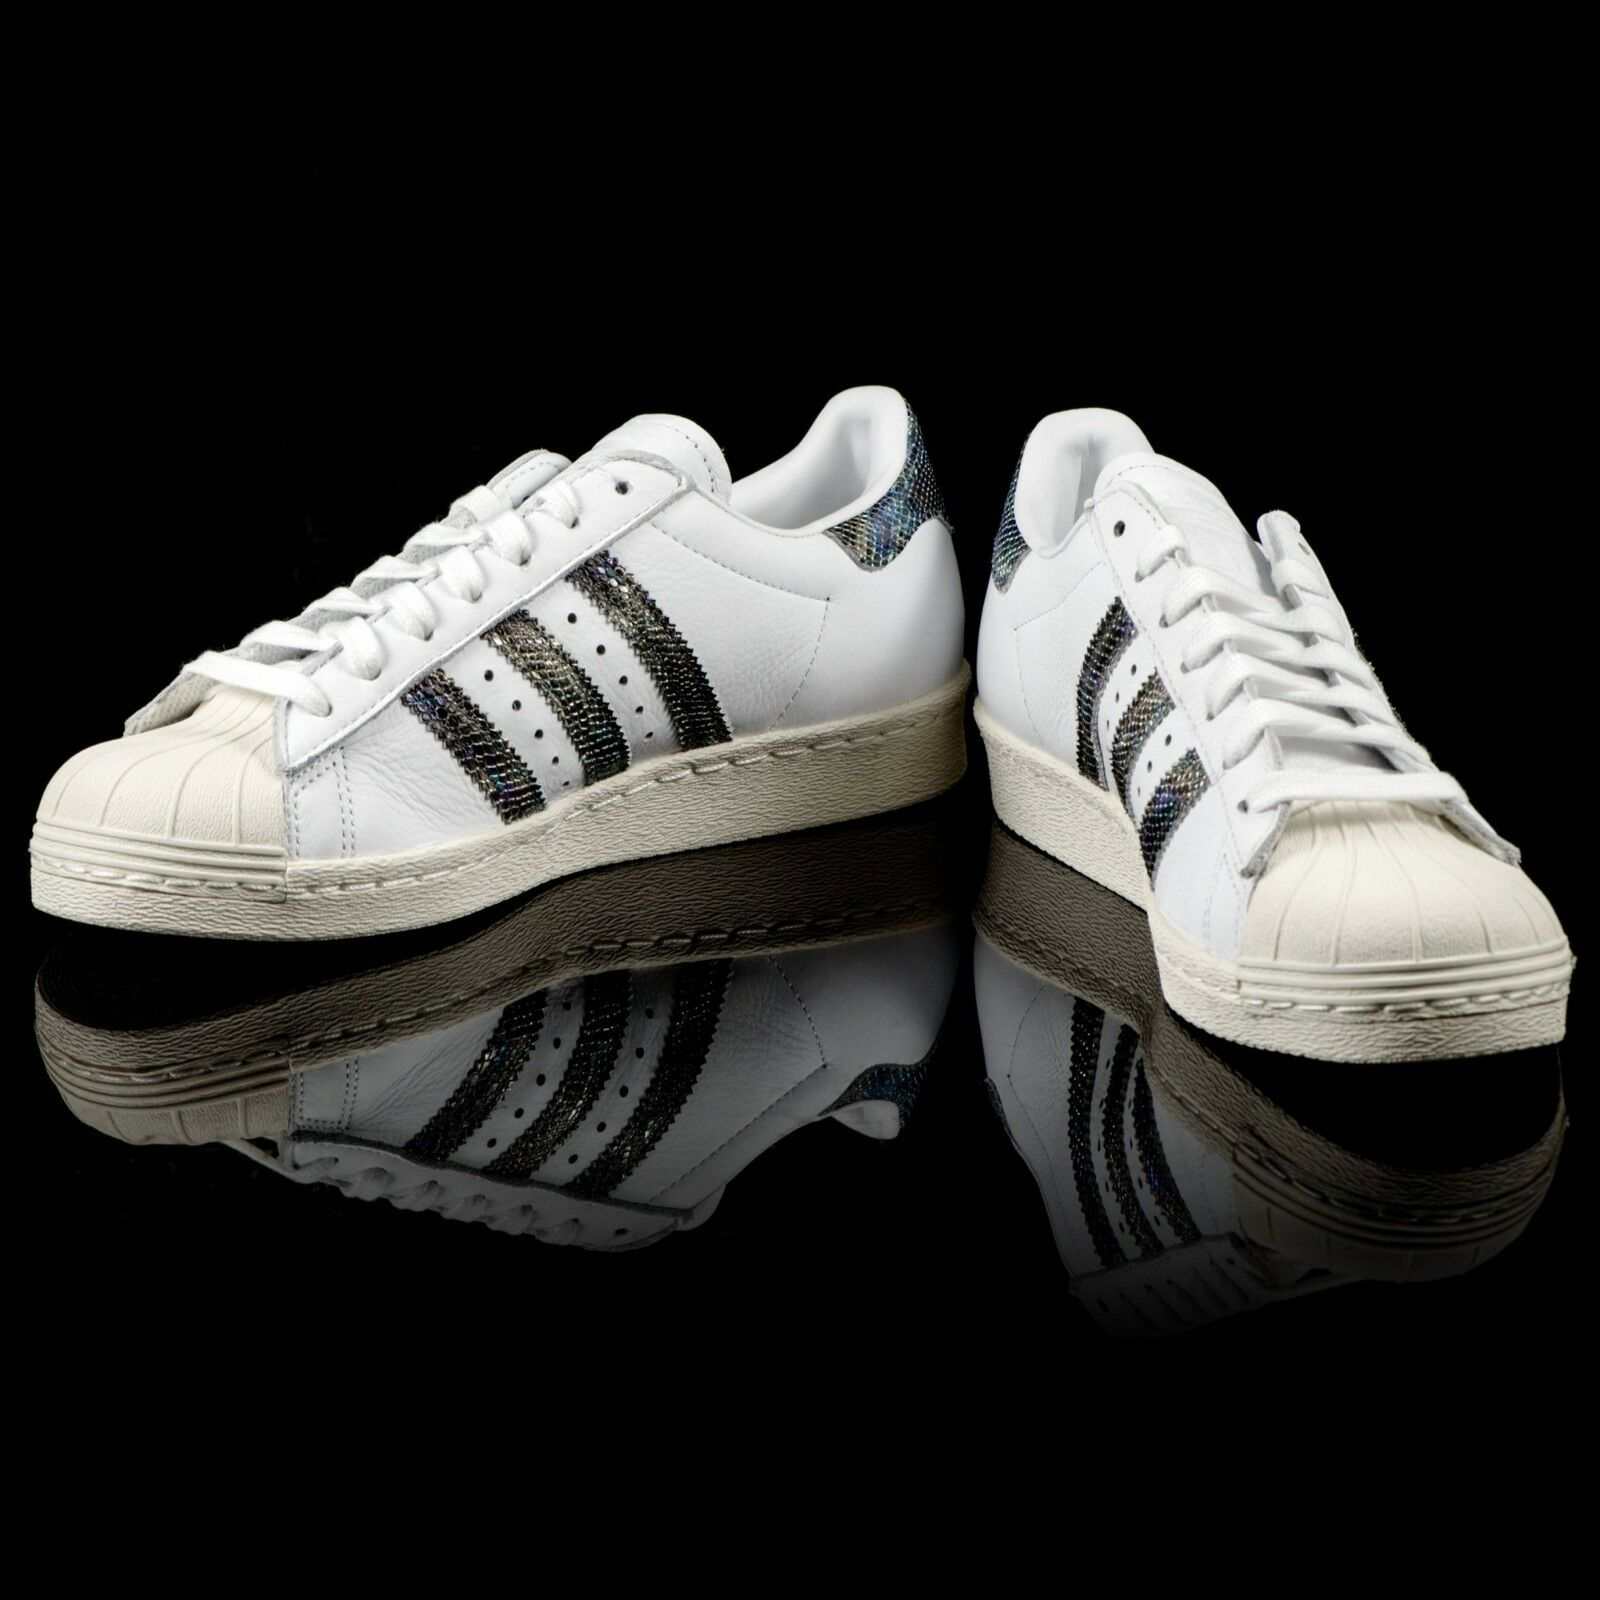 meet ba9a0 798ef Adidas Originals Uomo Superstar Superstar Superstar 80 s Snakeskin scarpe  da ginnastica scarpe Trainers Dimensione 13 dfccb9